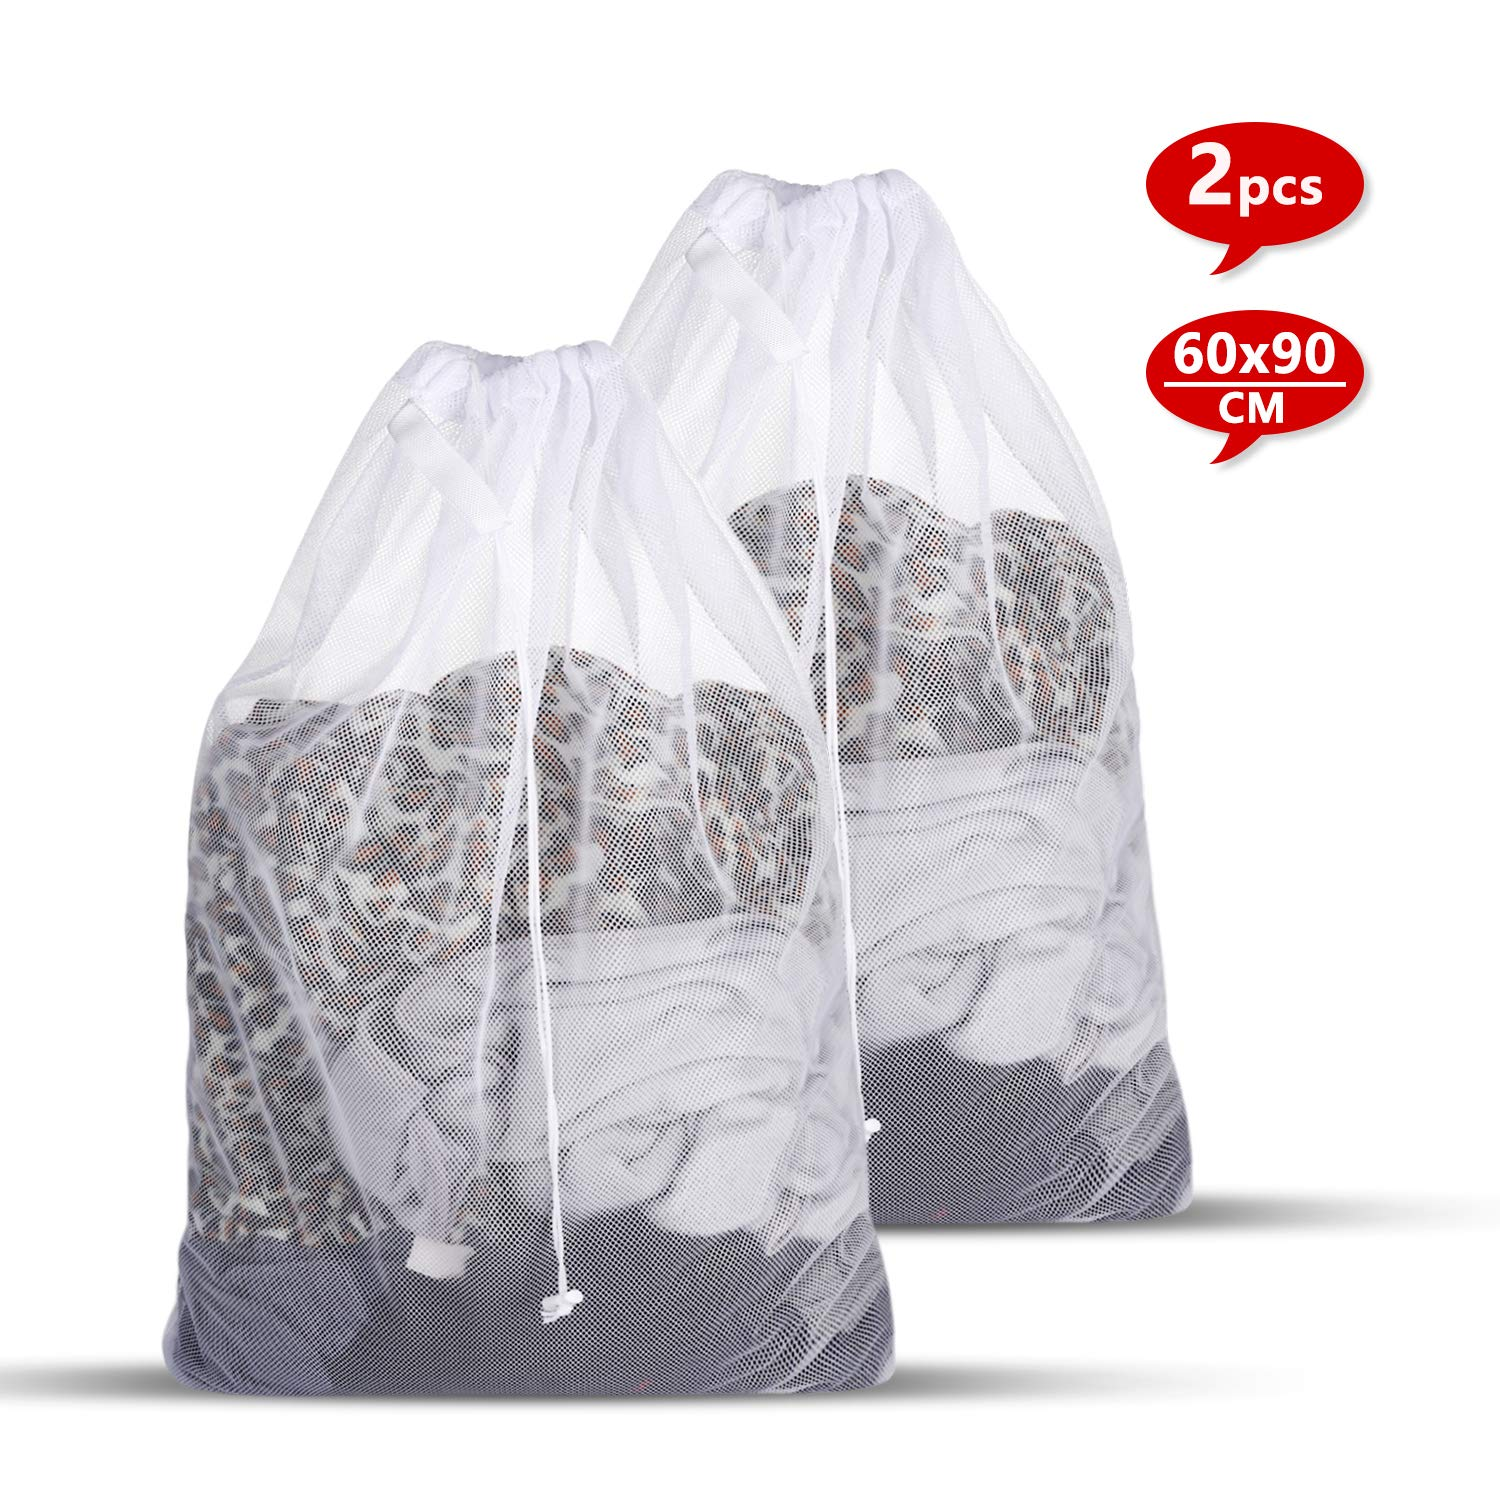 Laundry Bag, Mesh Laundry Bag - Reusable Washing Bags - Large Laundry Bags for Lingerie, Tights, Socks and Underwear 60 x 90cm Ucradle